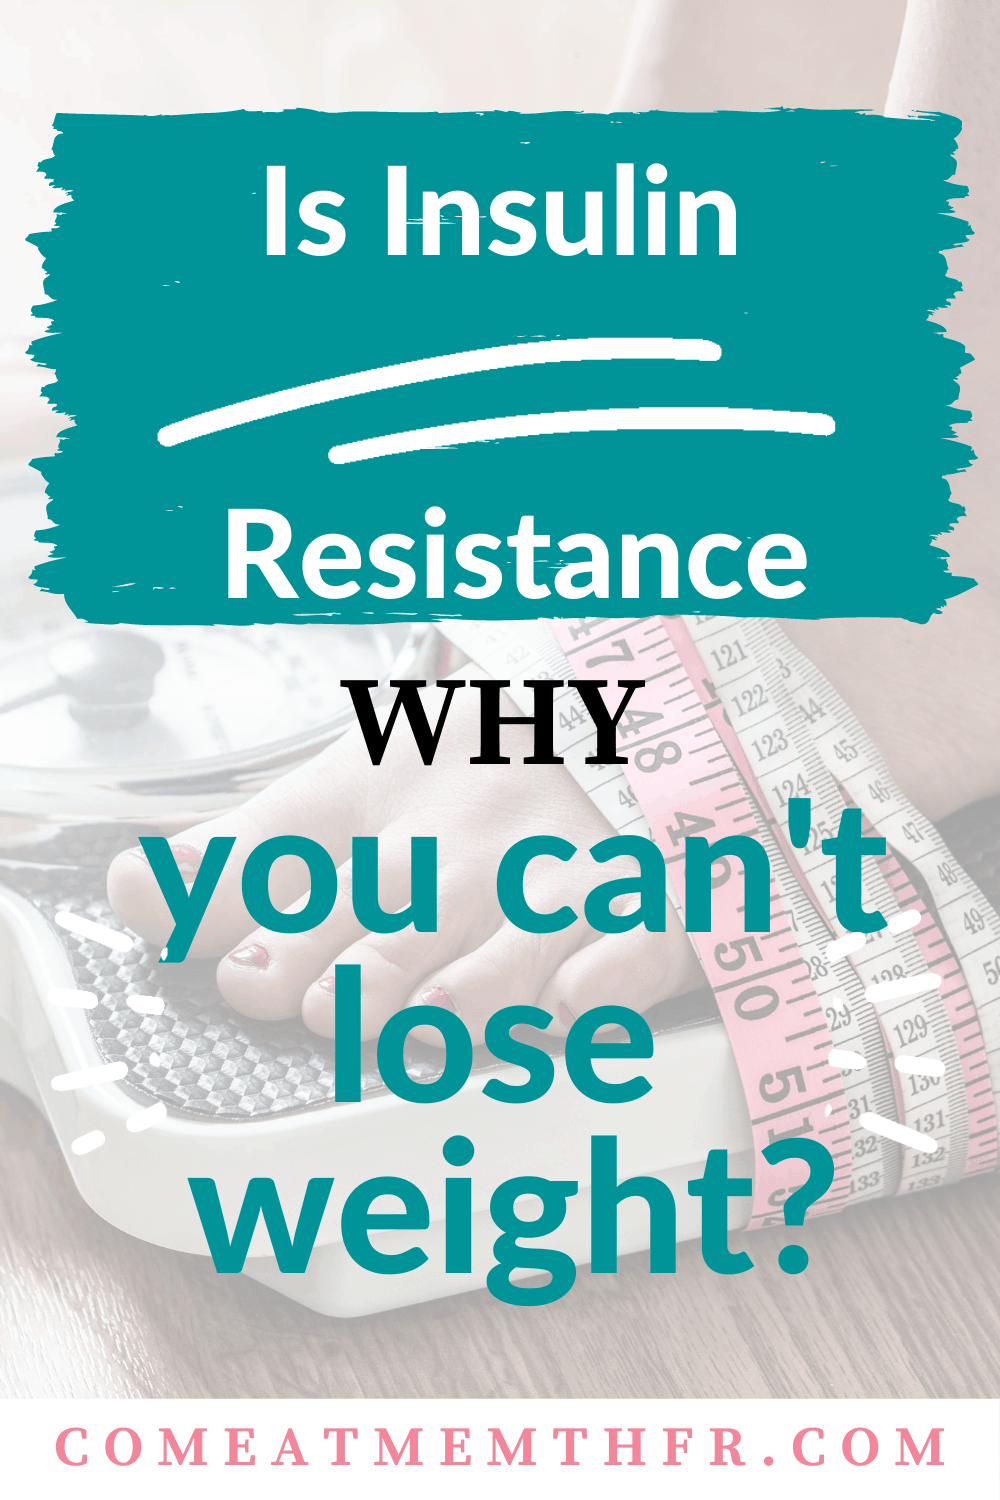 Is insulin resistance why you can't lose weight?